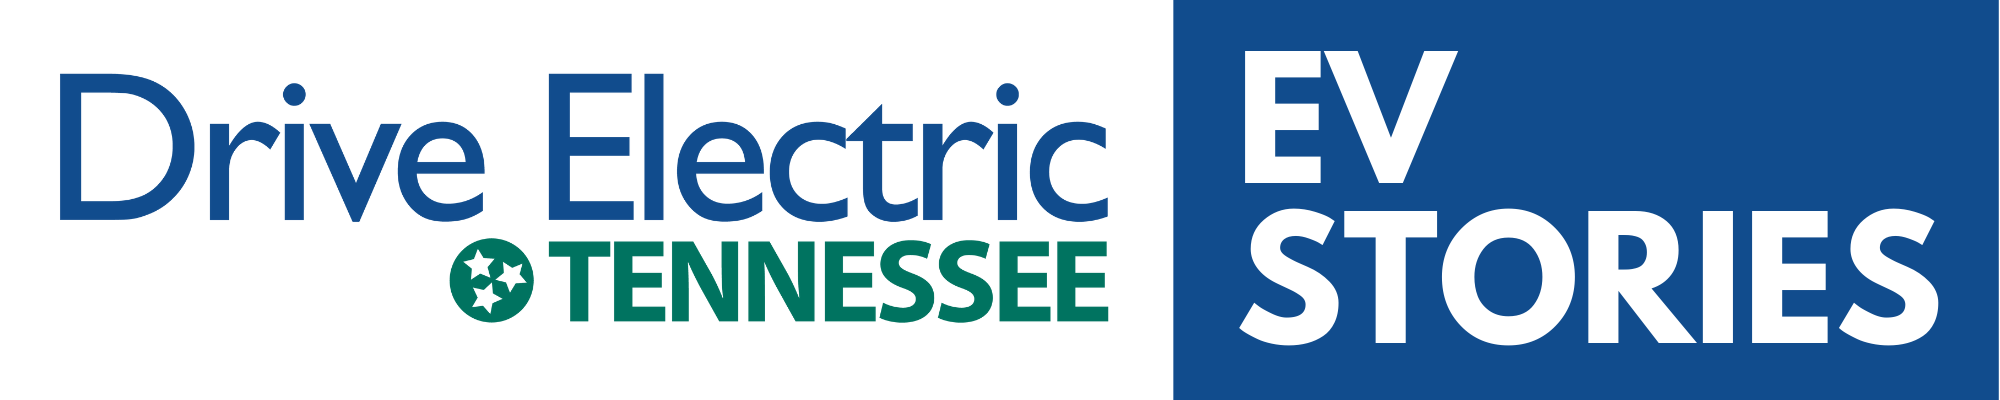 Drive Electric Tennessee 'EV Stories'